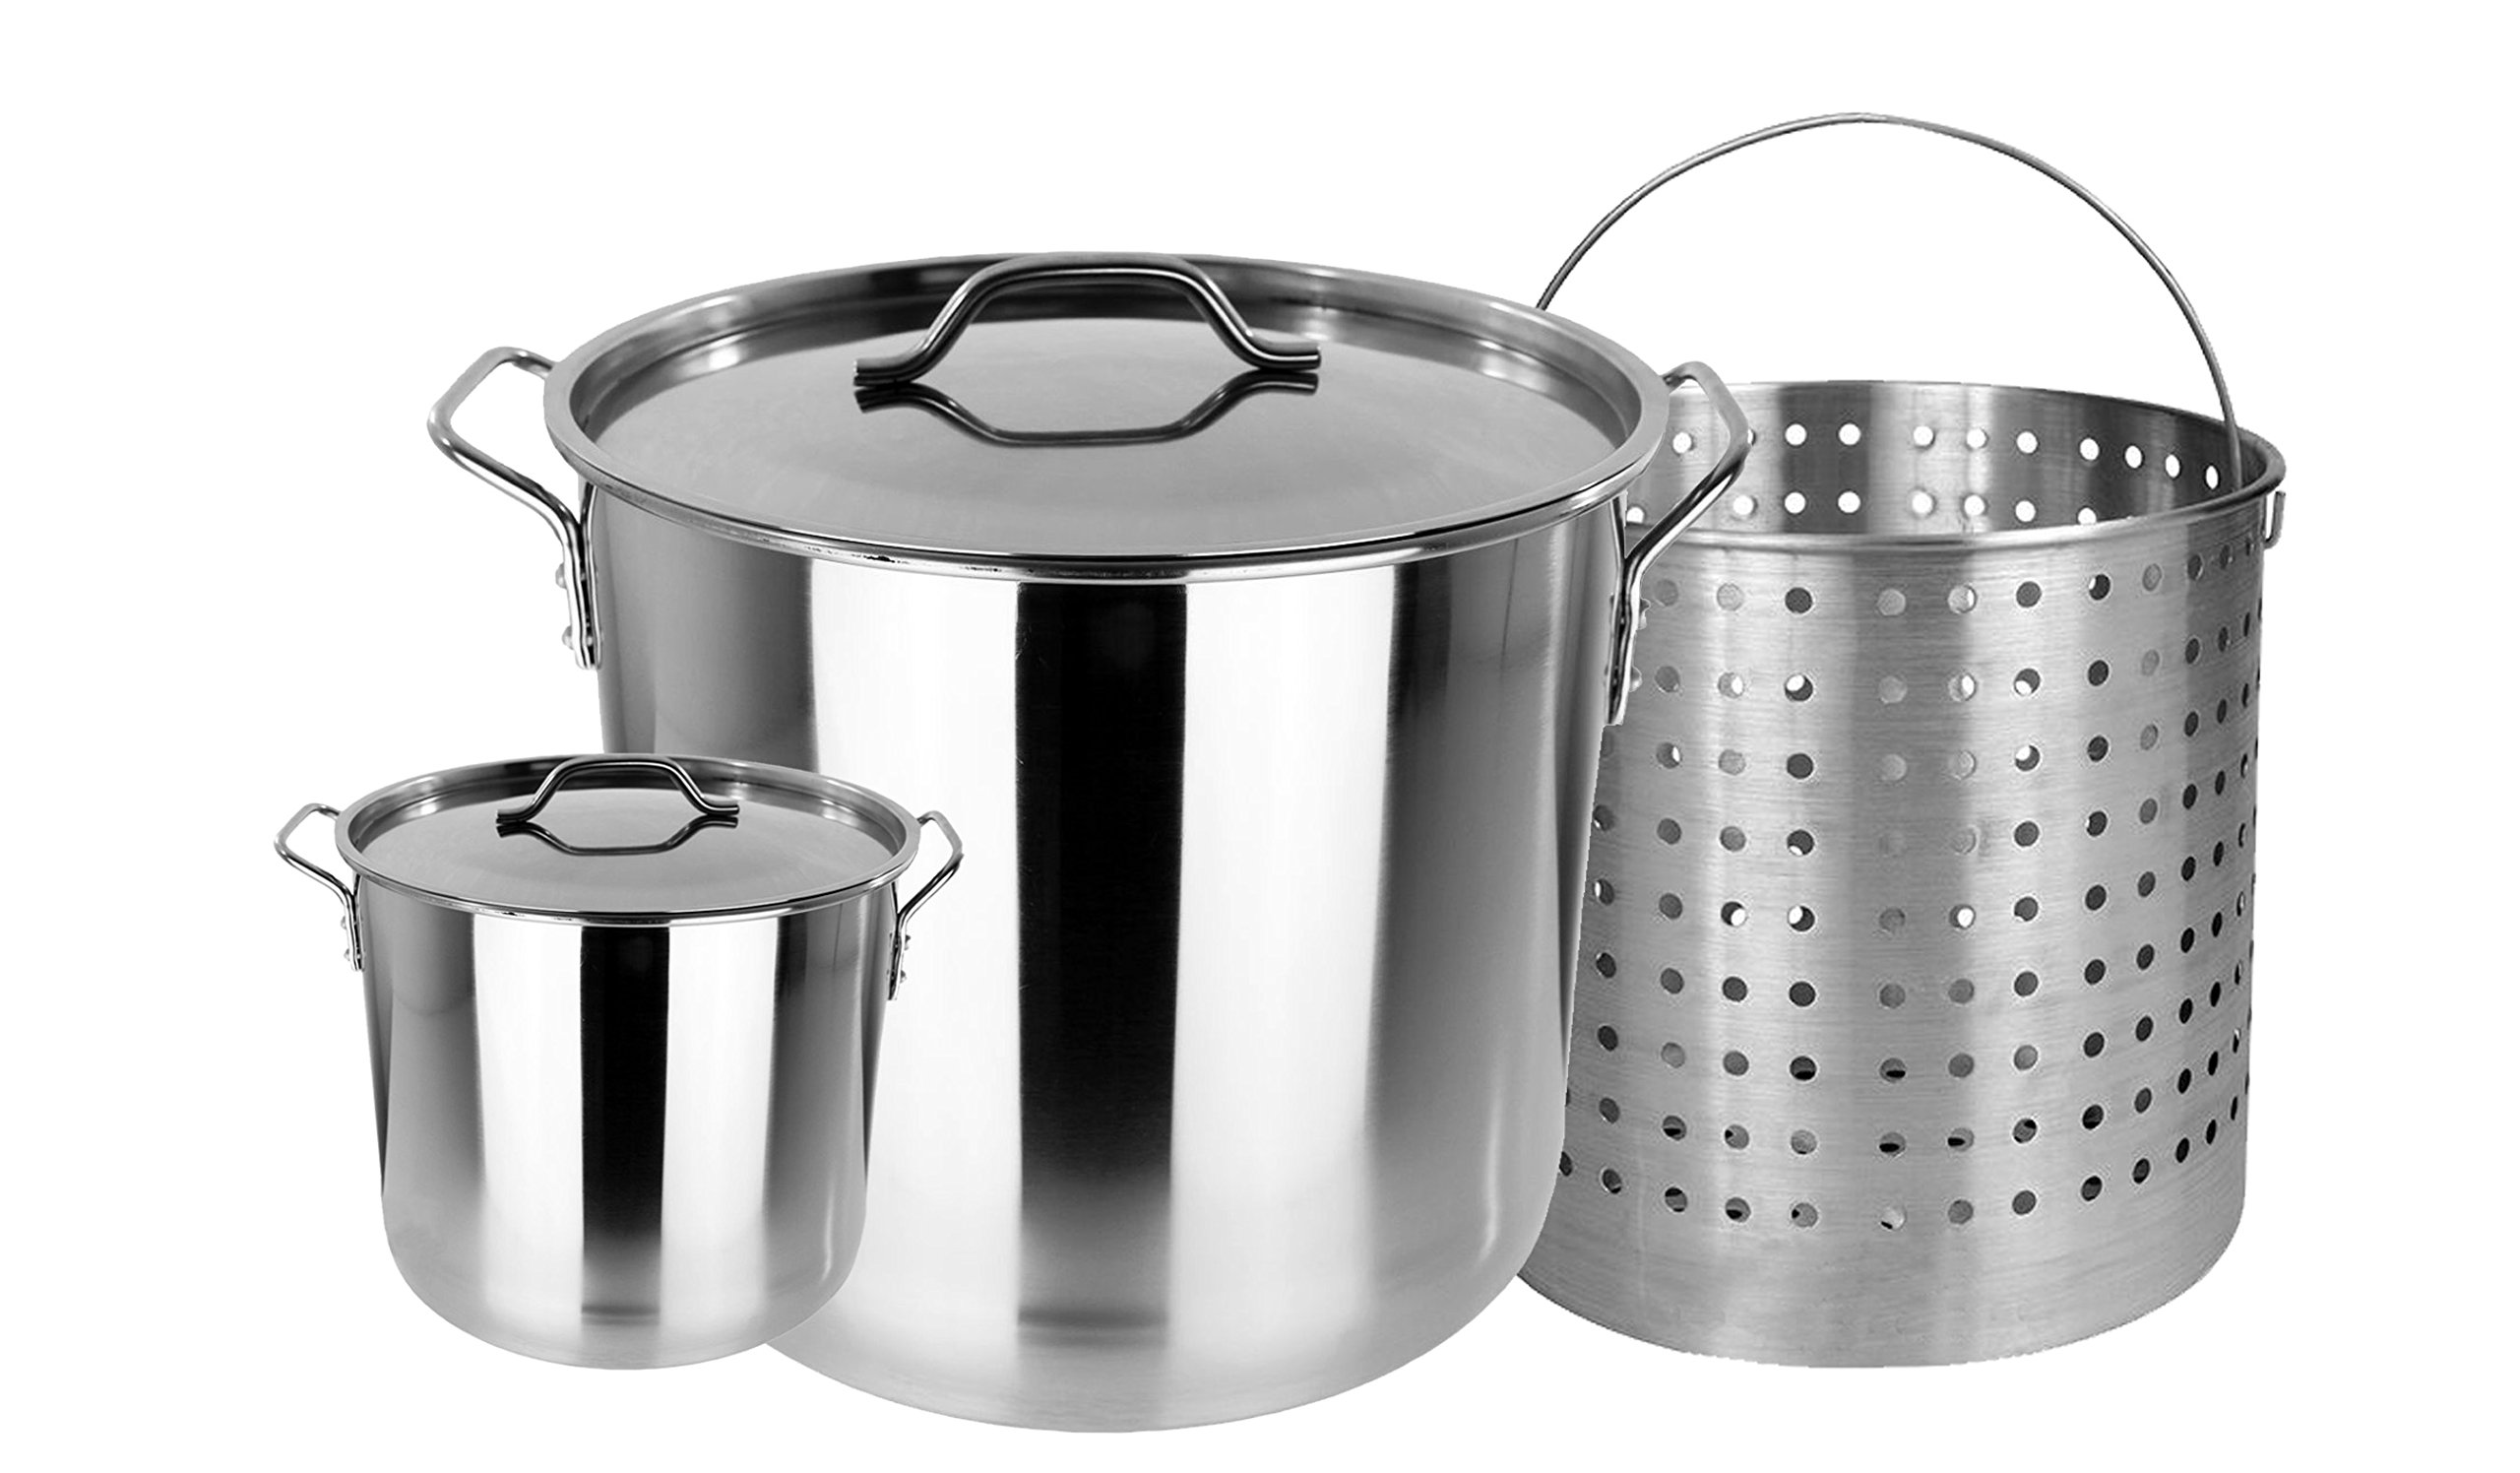 Bioexcel XXL Stainless Steel Boil Pot with Steamer Basket & Lid 53/80 Quart + Free 10 QT Stainless steel Stock Pot with Lid. This one is 80 QT